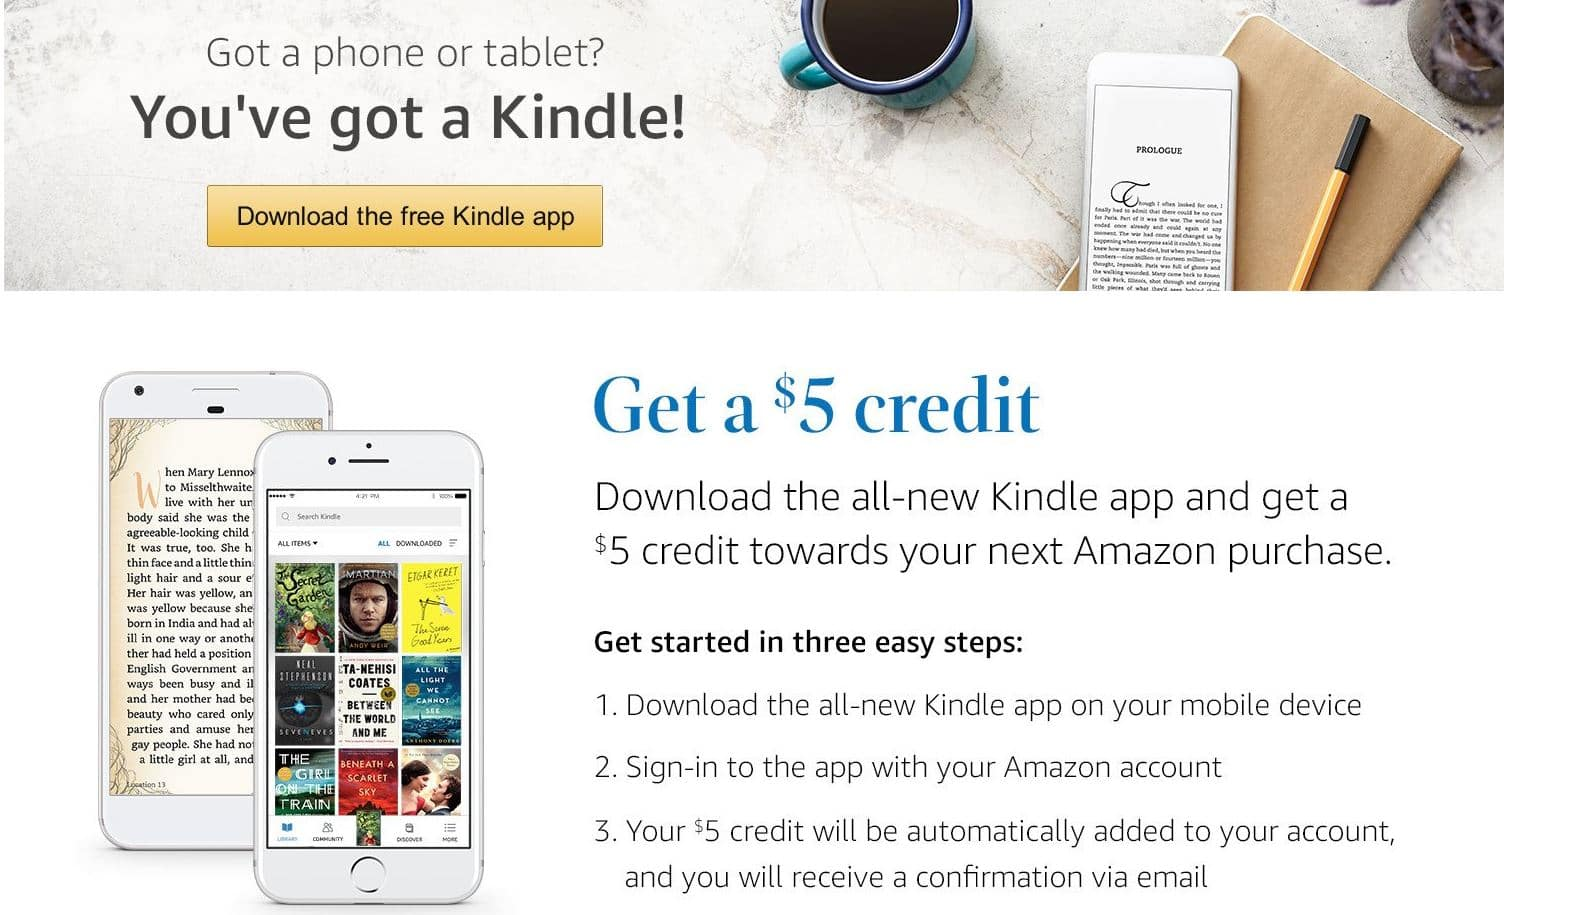 $5 Amazon Credit when download Kindle app on mobile device